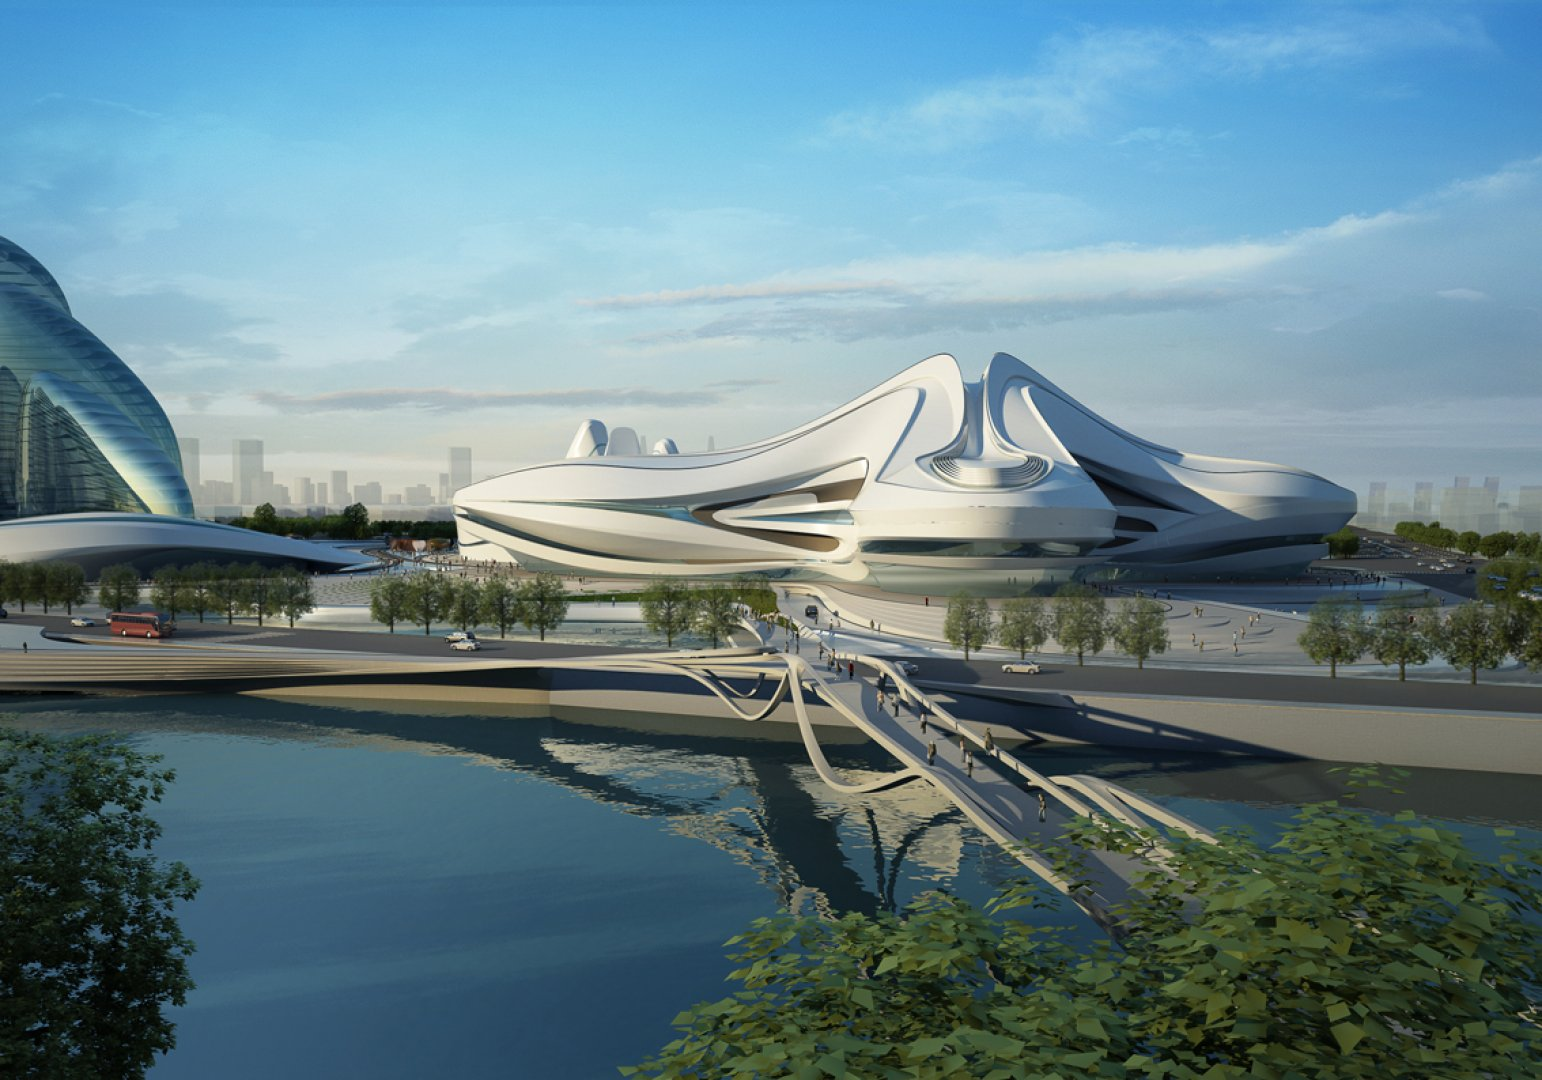 Zaha hadid quotes about art quotesgram for Art architectural